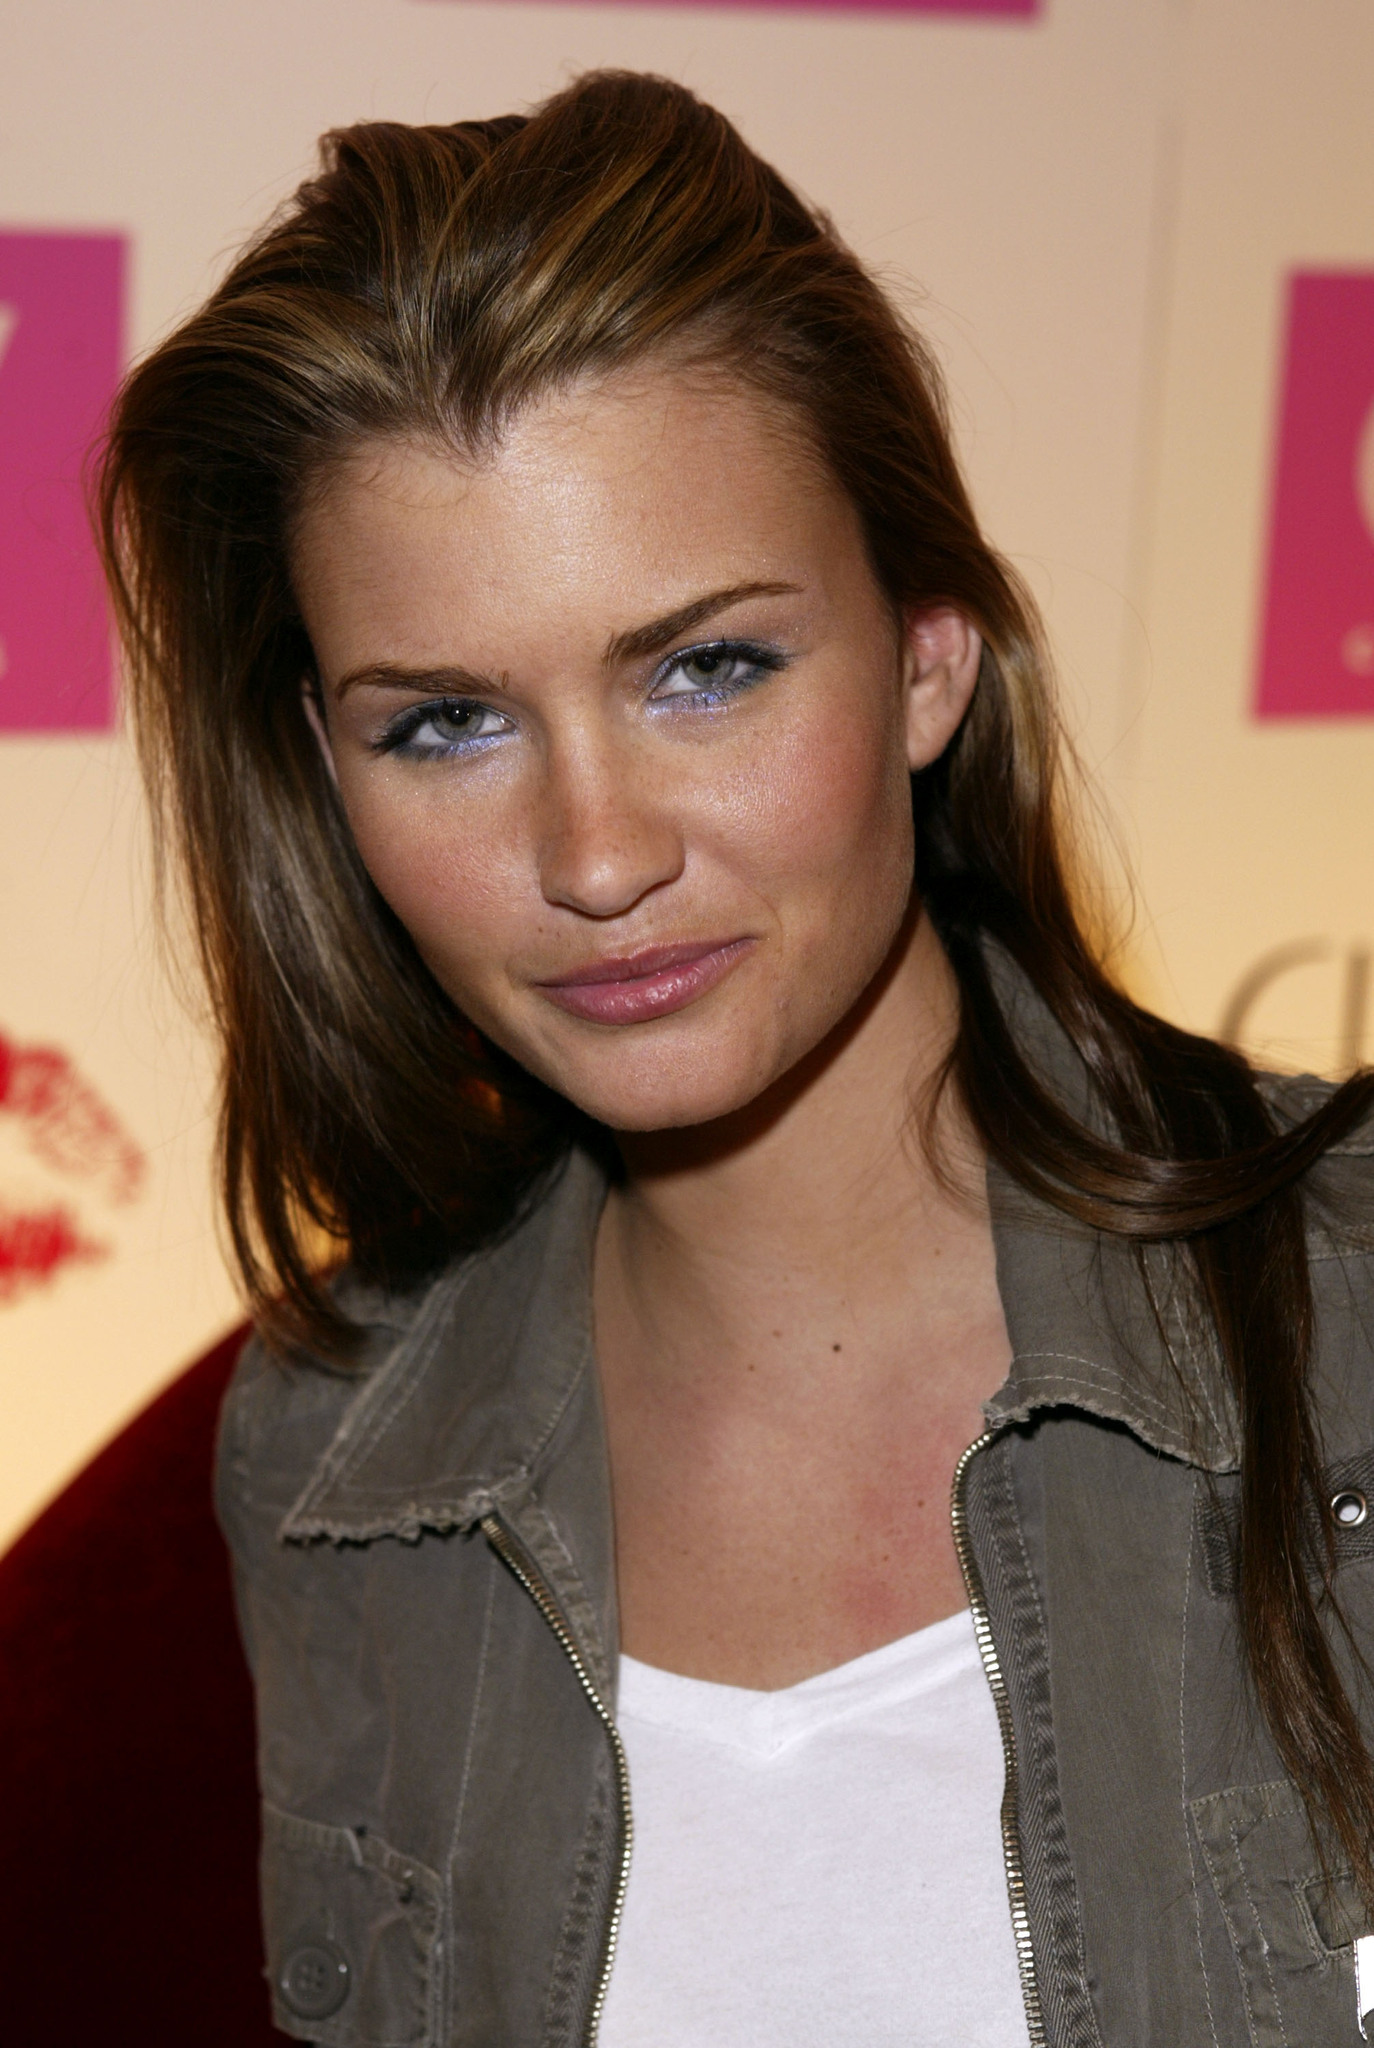 List of Playboy Playmates of the Year List of Playboy Playmates of the Year new pics